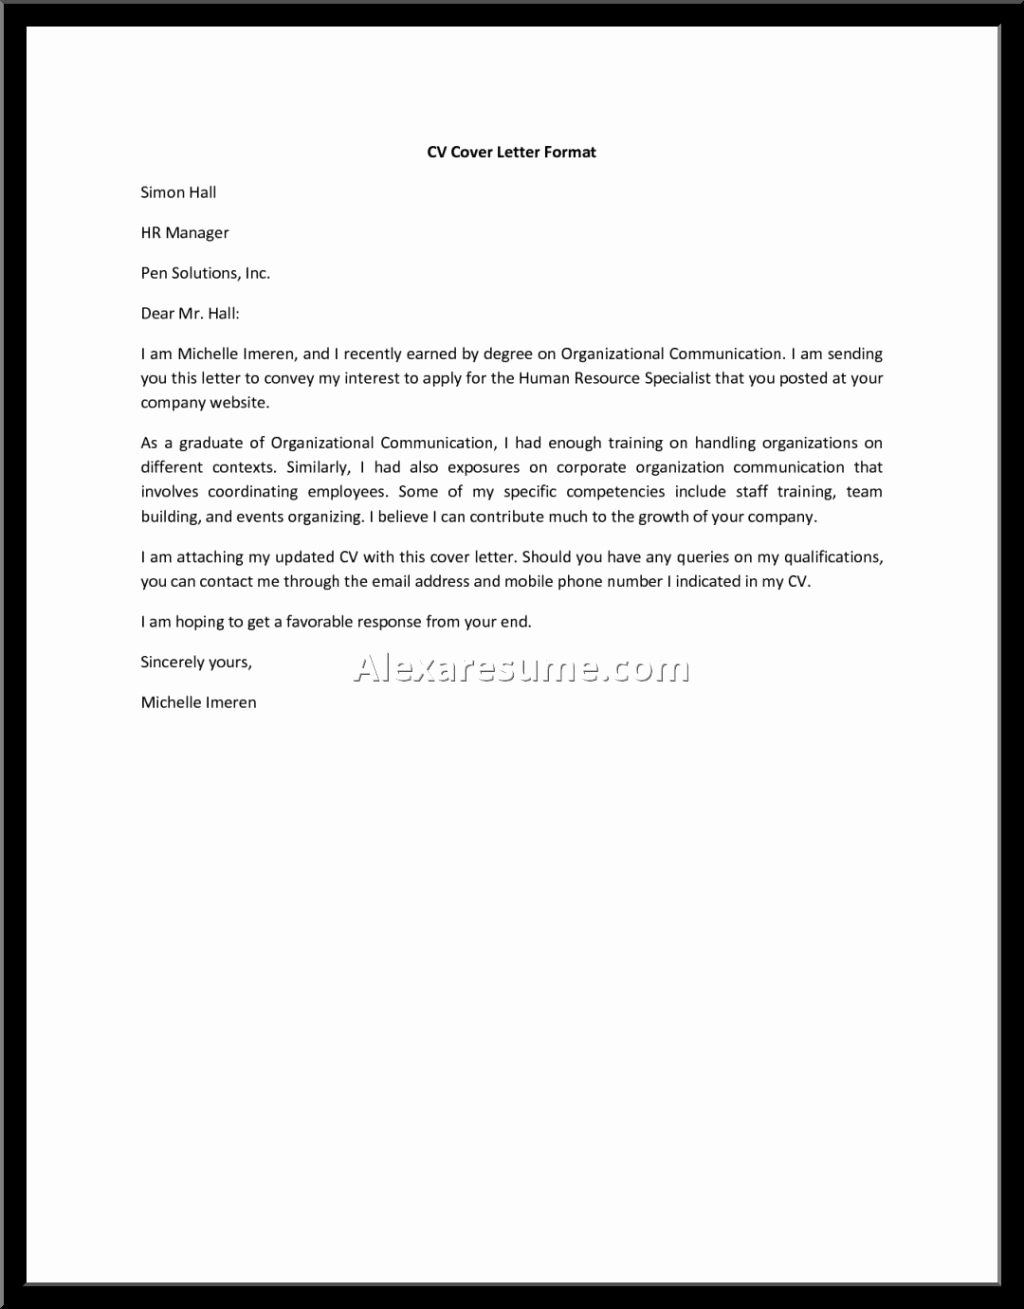 Generic Cover Letter Sample Unique Cover Letter for General Helper — General assistant Cover